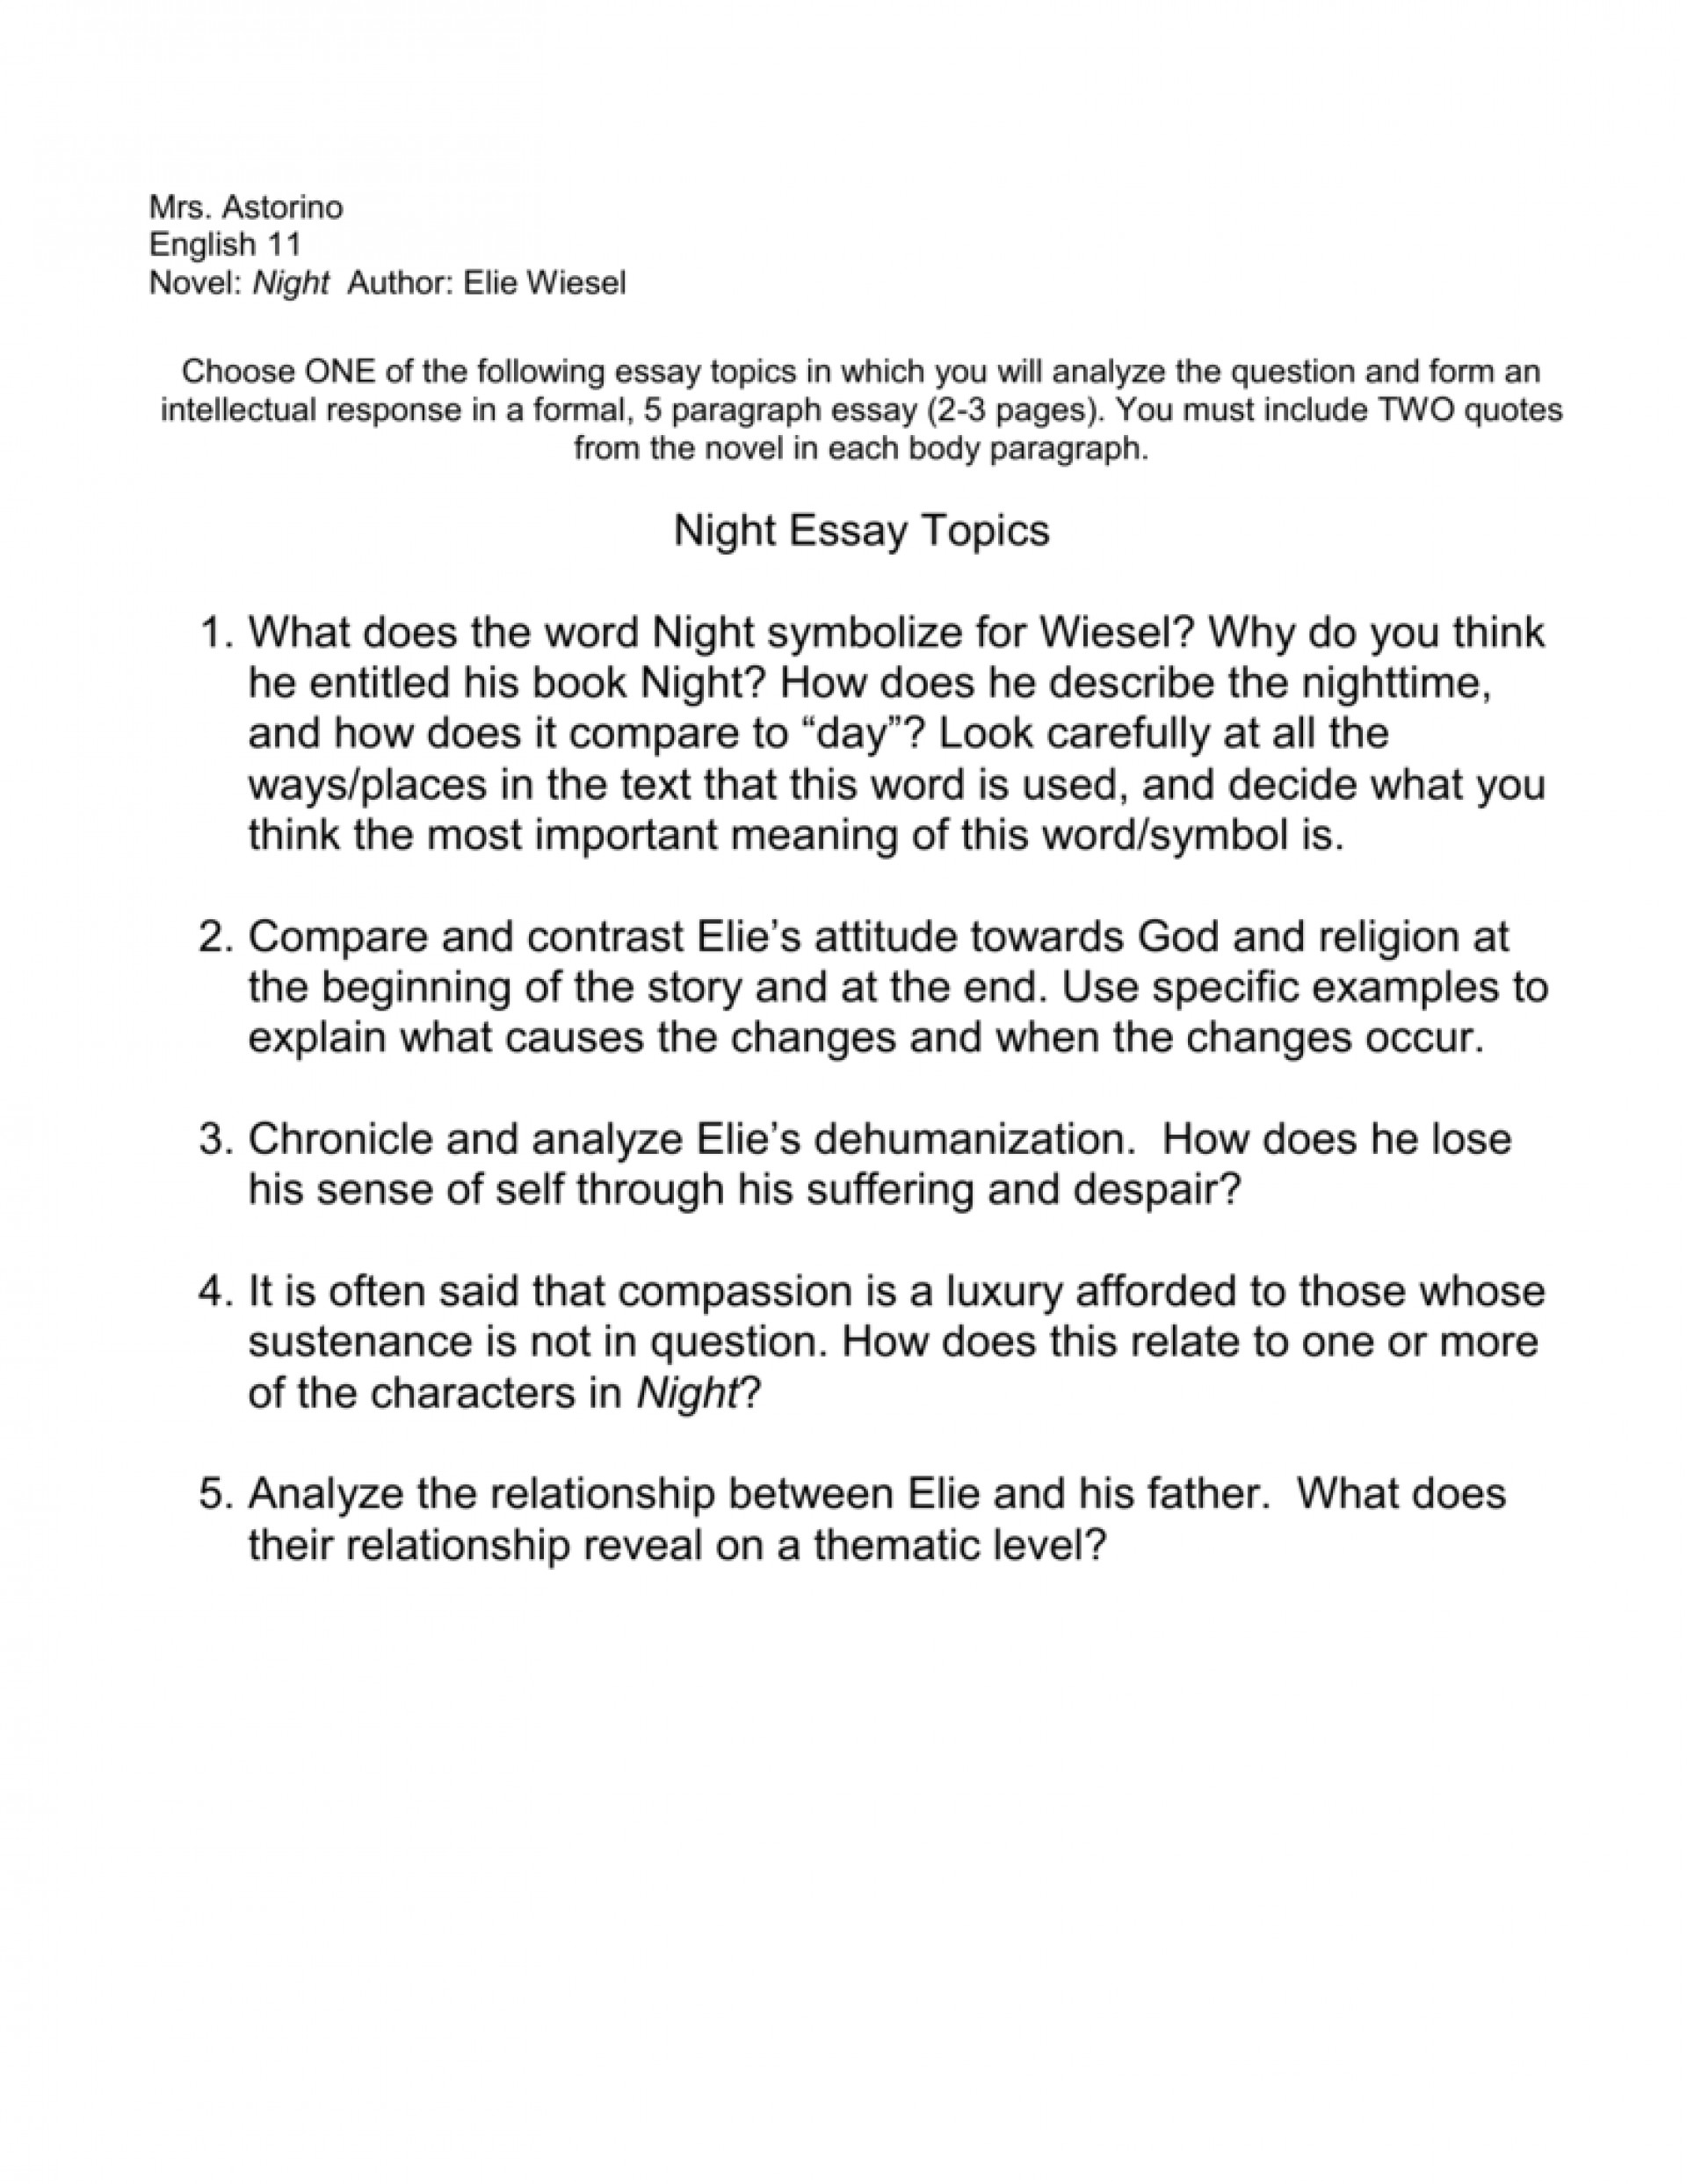 012 008045703 1 Essay Example Magnificent 2 Paragraph Topics About Friendship Graphic Organizer 1920